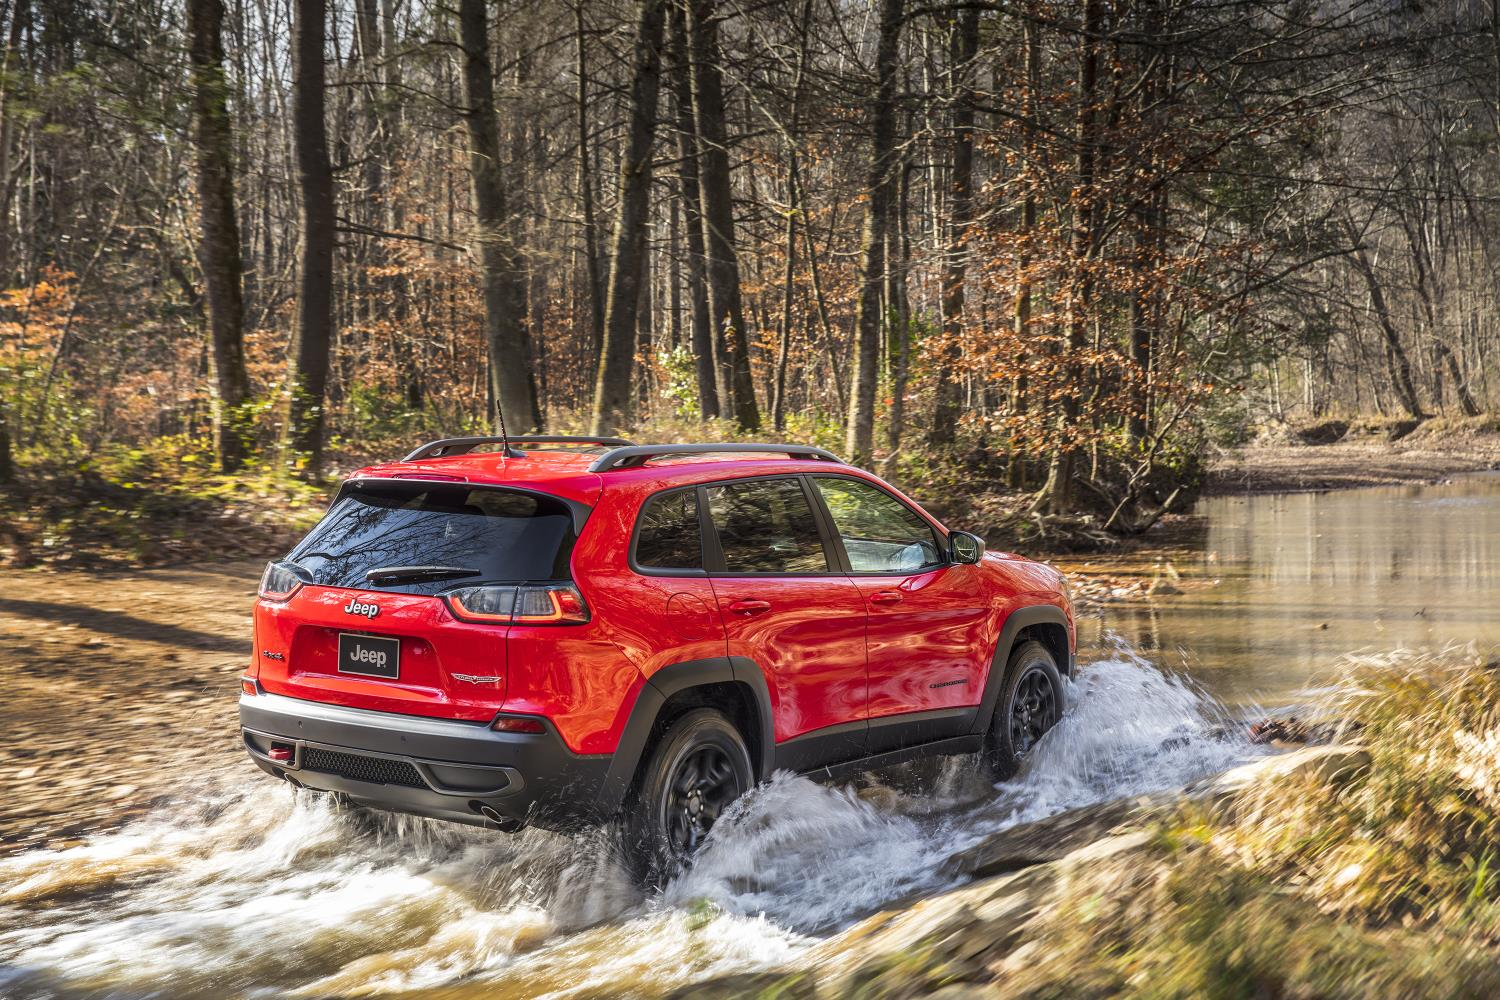 Decline In Jeep Sales At Odds With Marchionne's Targets | Jeep Cherokee, which recently received a refresh, has not been selling as well as FCA CEO Sergio Marchionne had hoped in Europe